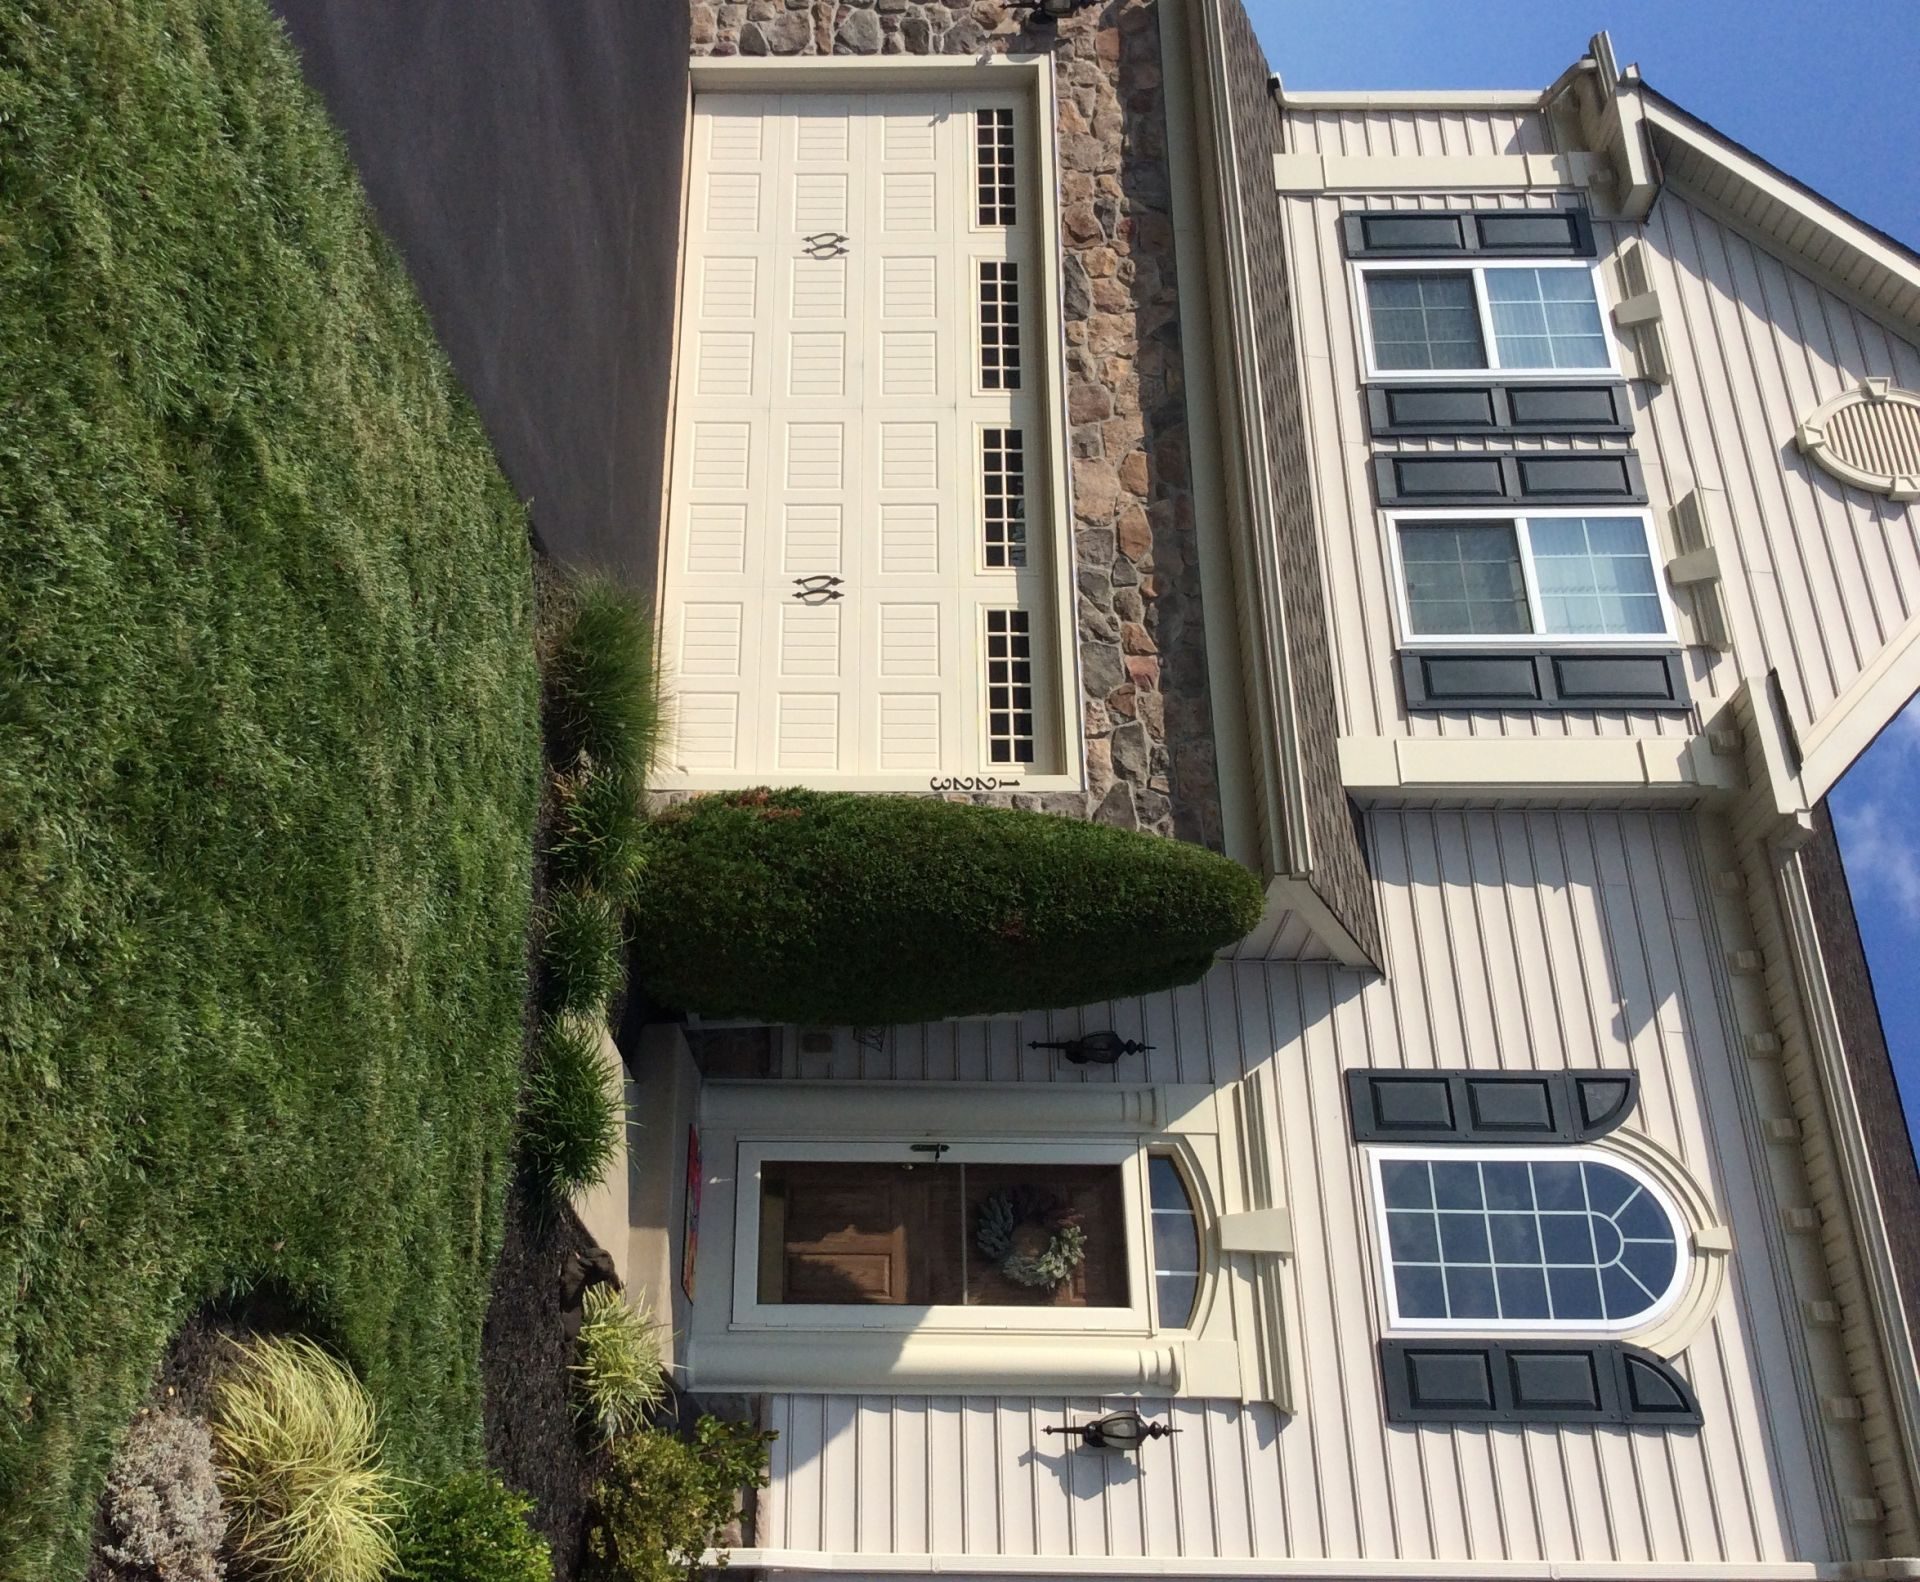 OPEN HOUSE 1223 Heron Ct in Quakertown Sunday March 18th from 1:00 – 3:00!